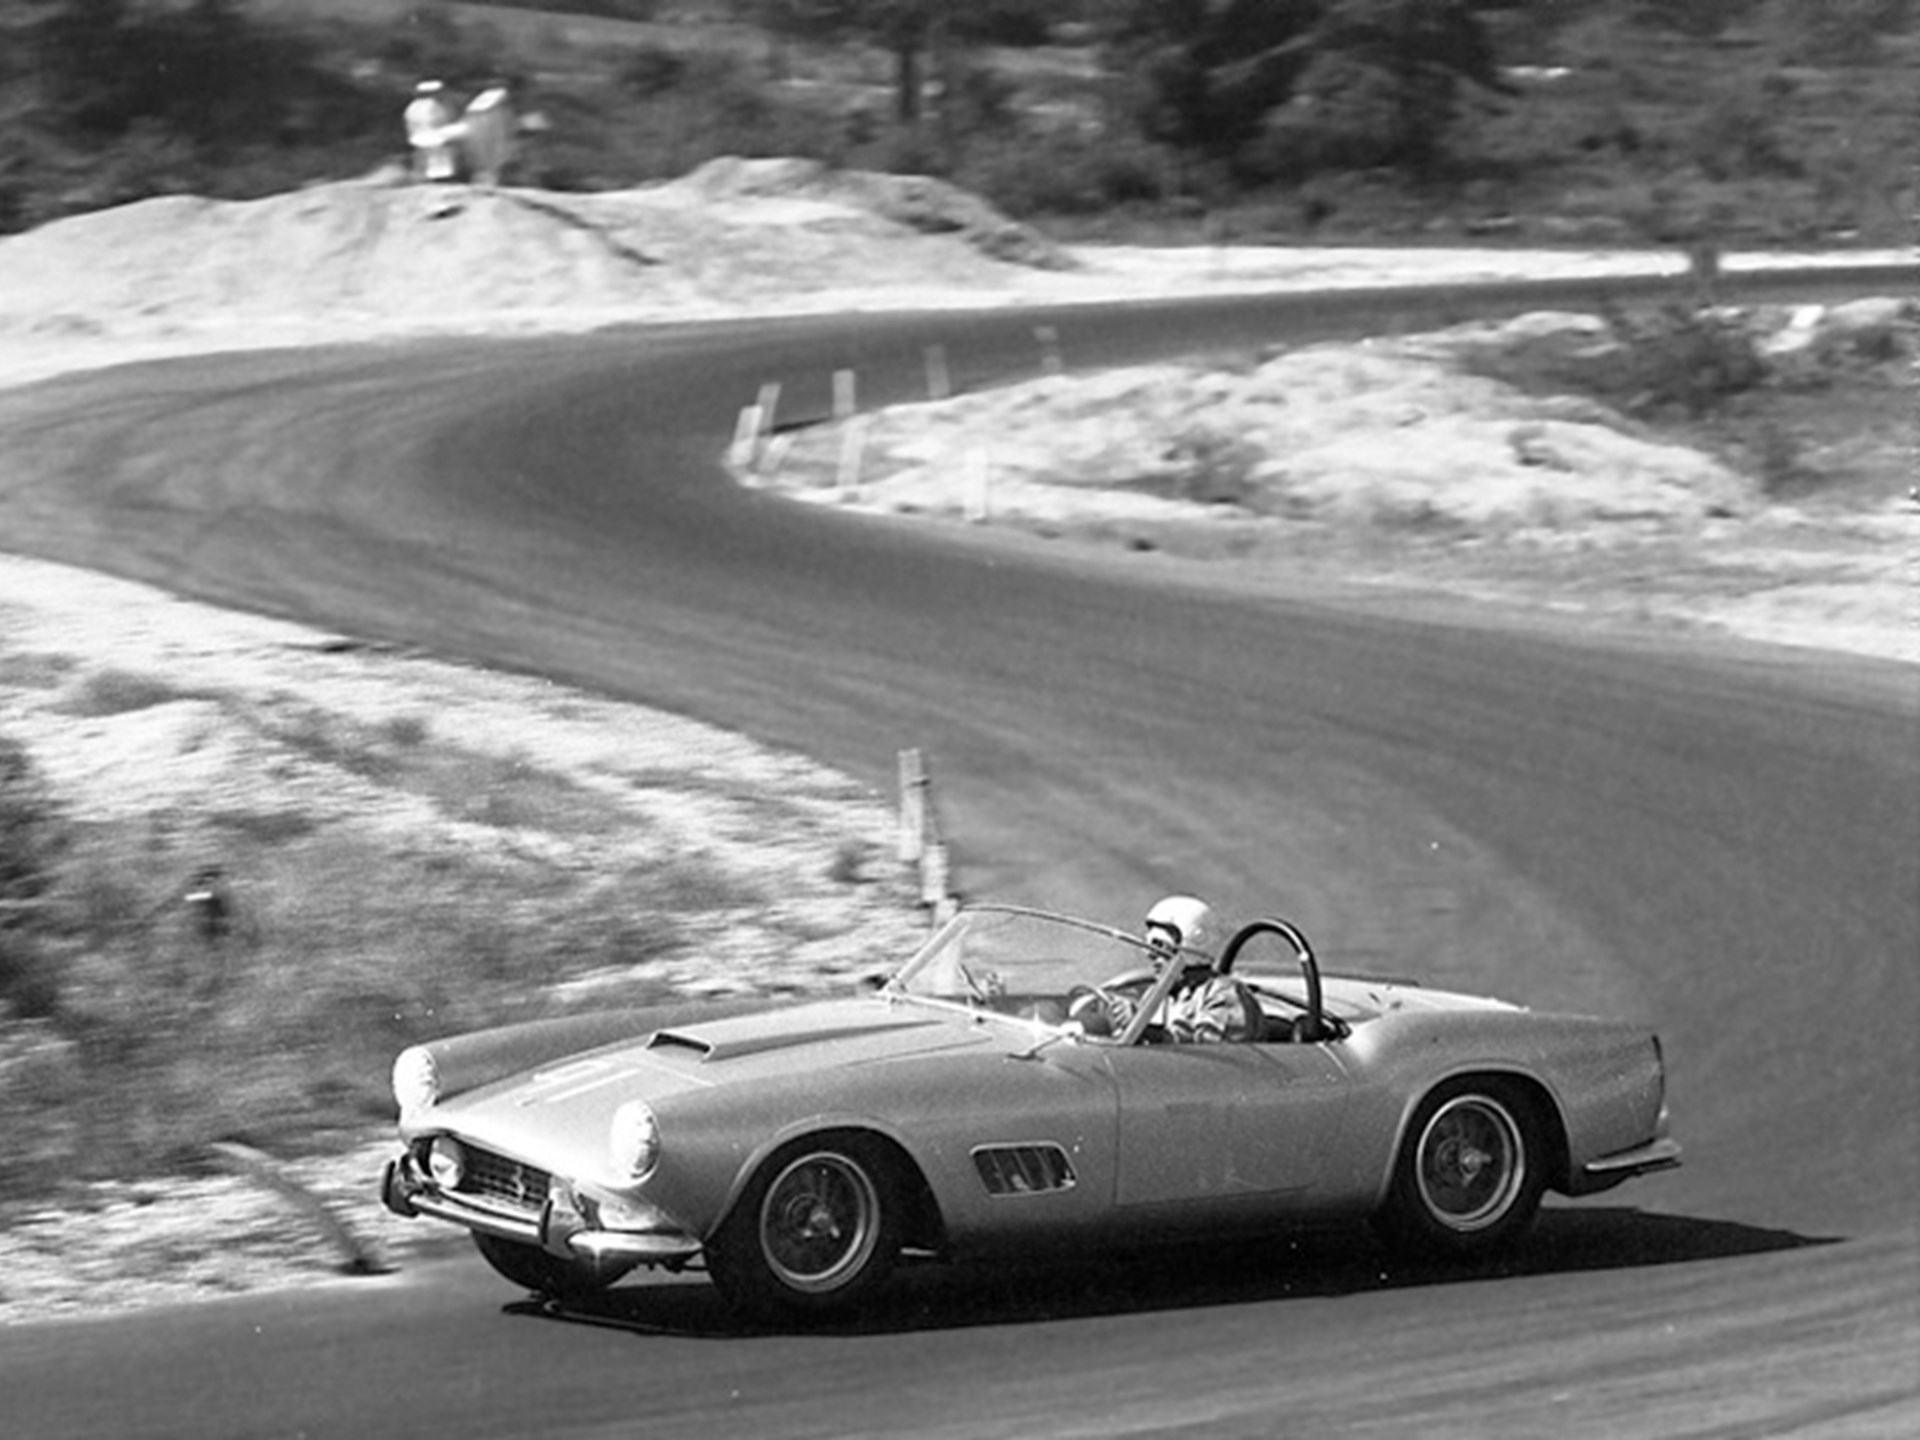 Grossman behind the wheel of 1451 GT at Thompson in 1959.